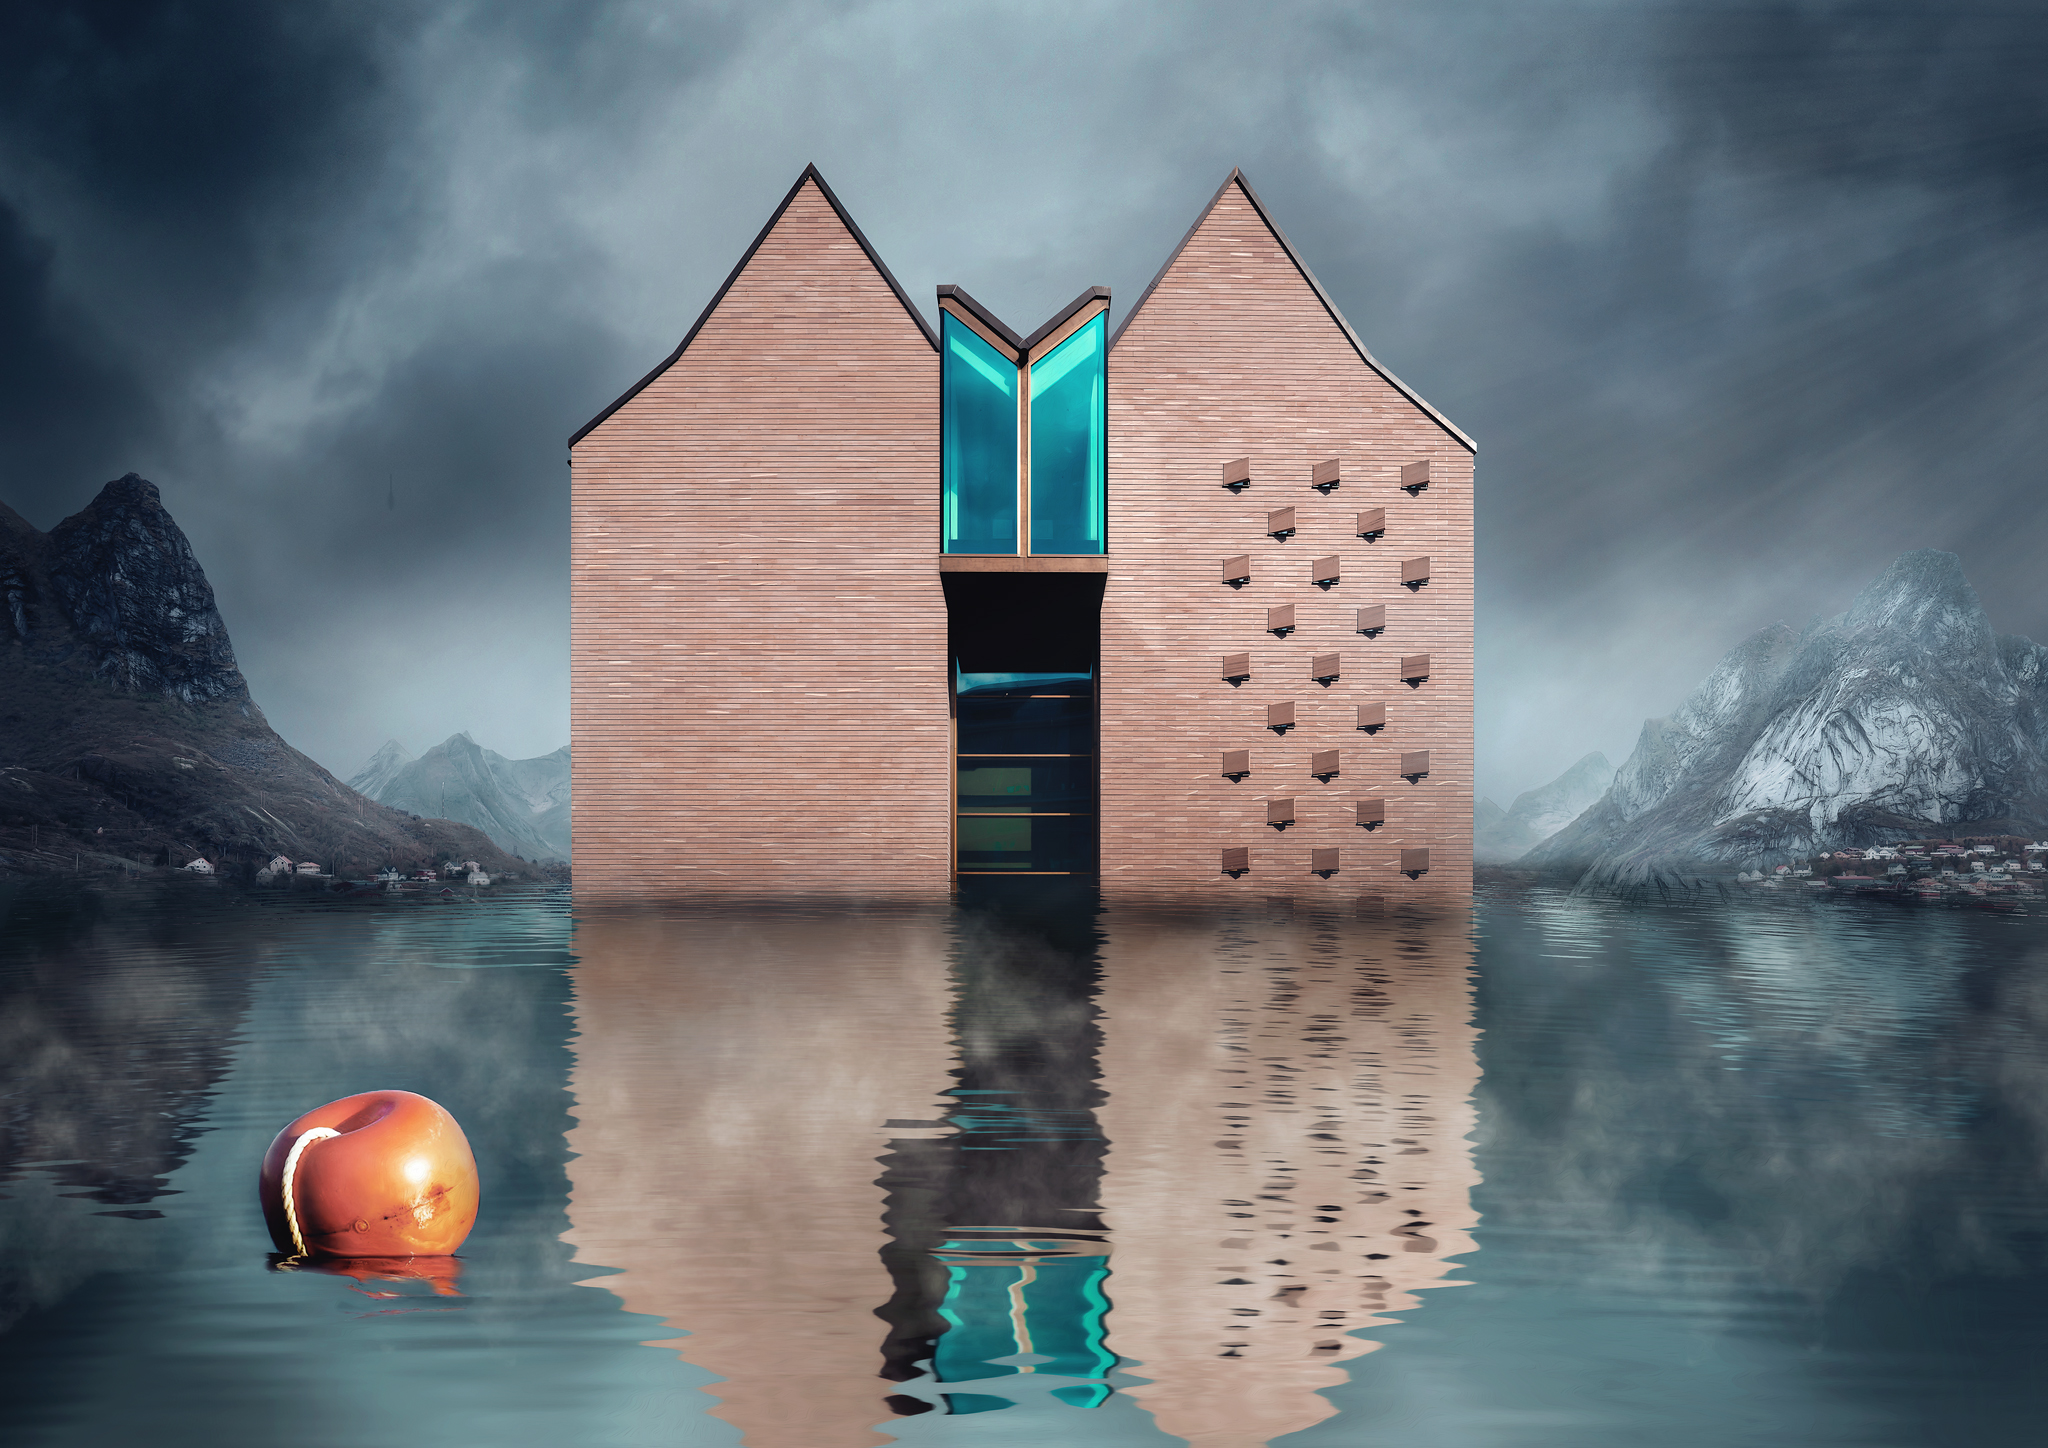 Architektur Photoshop Composing